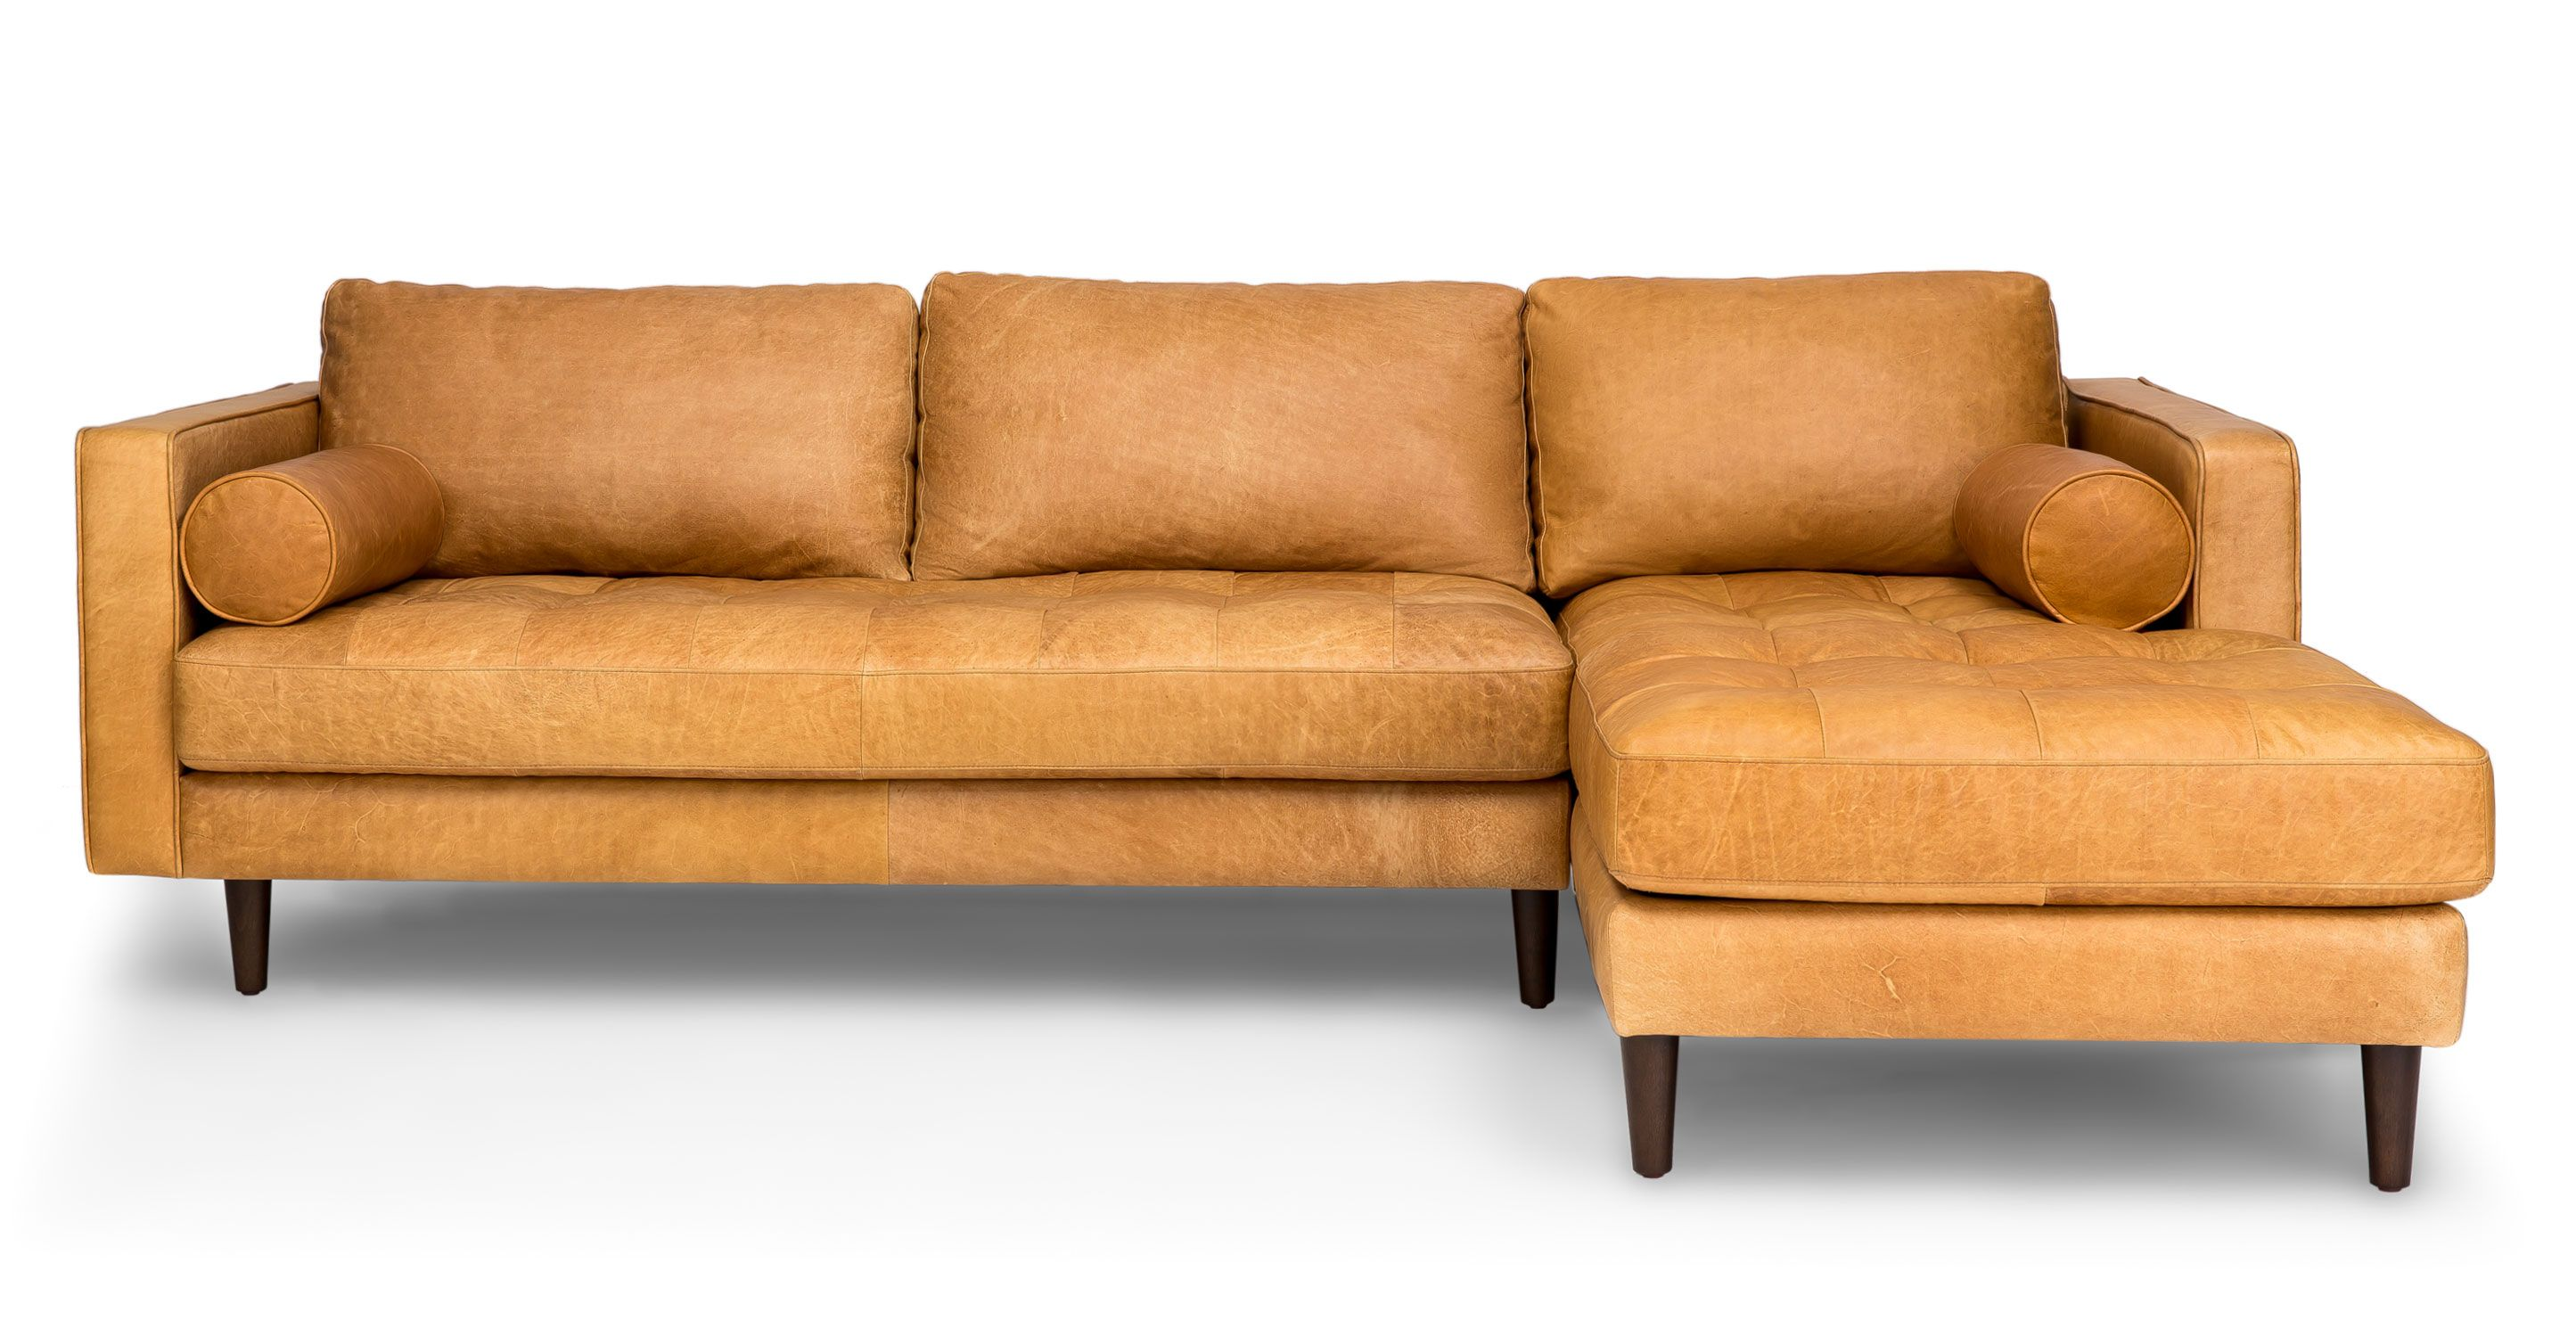 Sven Charme Tan Right Sectional Sofa   Sectionals   Article | Modern, Mid  Century And Scandinavian Furniture